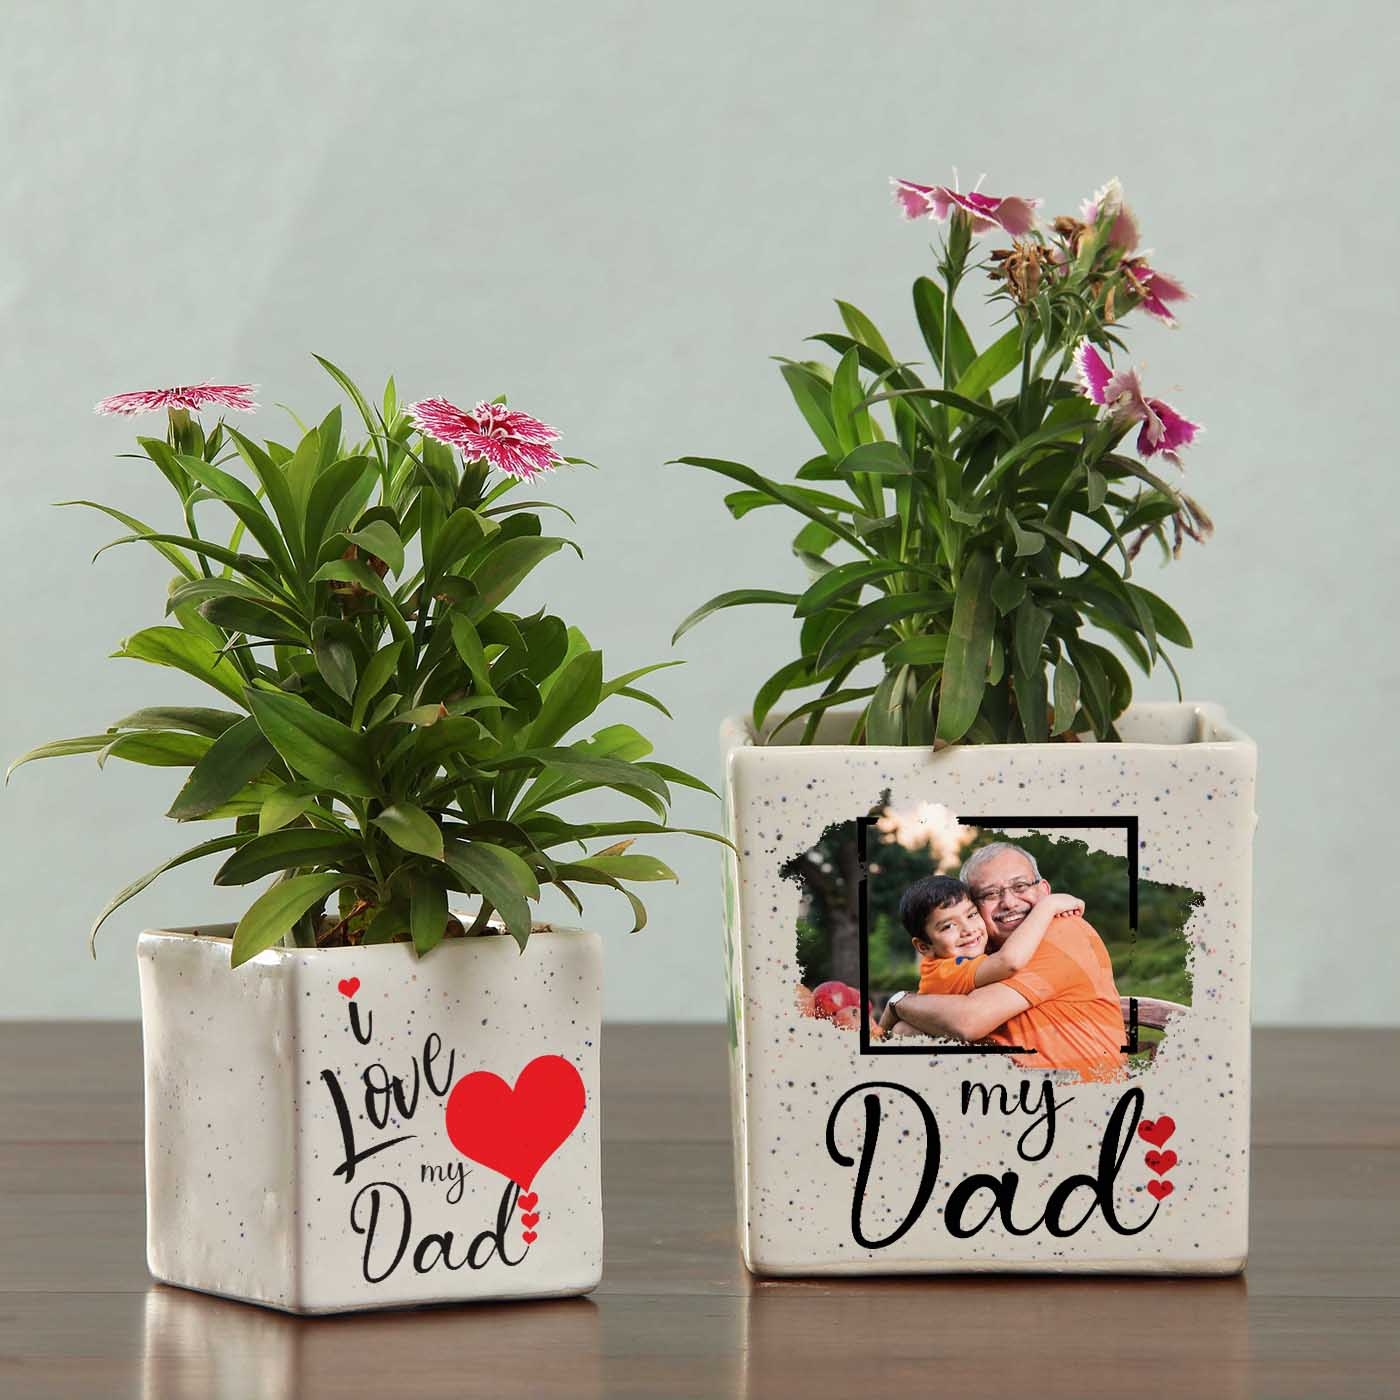 p-i-love-my-dad-personalized-planter-without-plant-set-of-2-113699-m-IGP